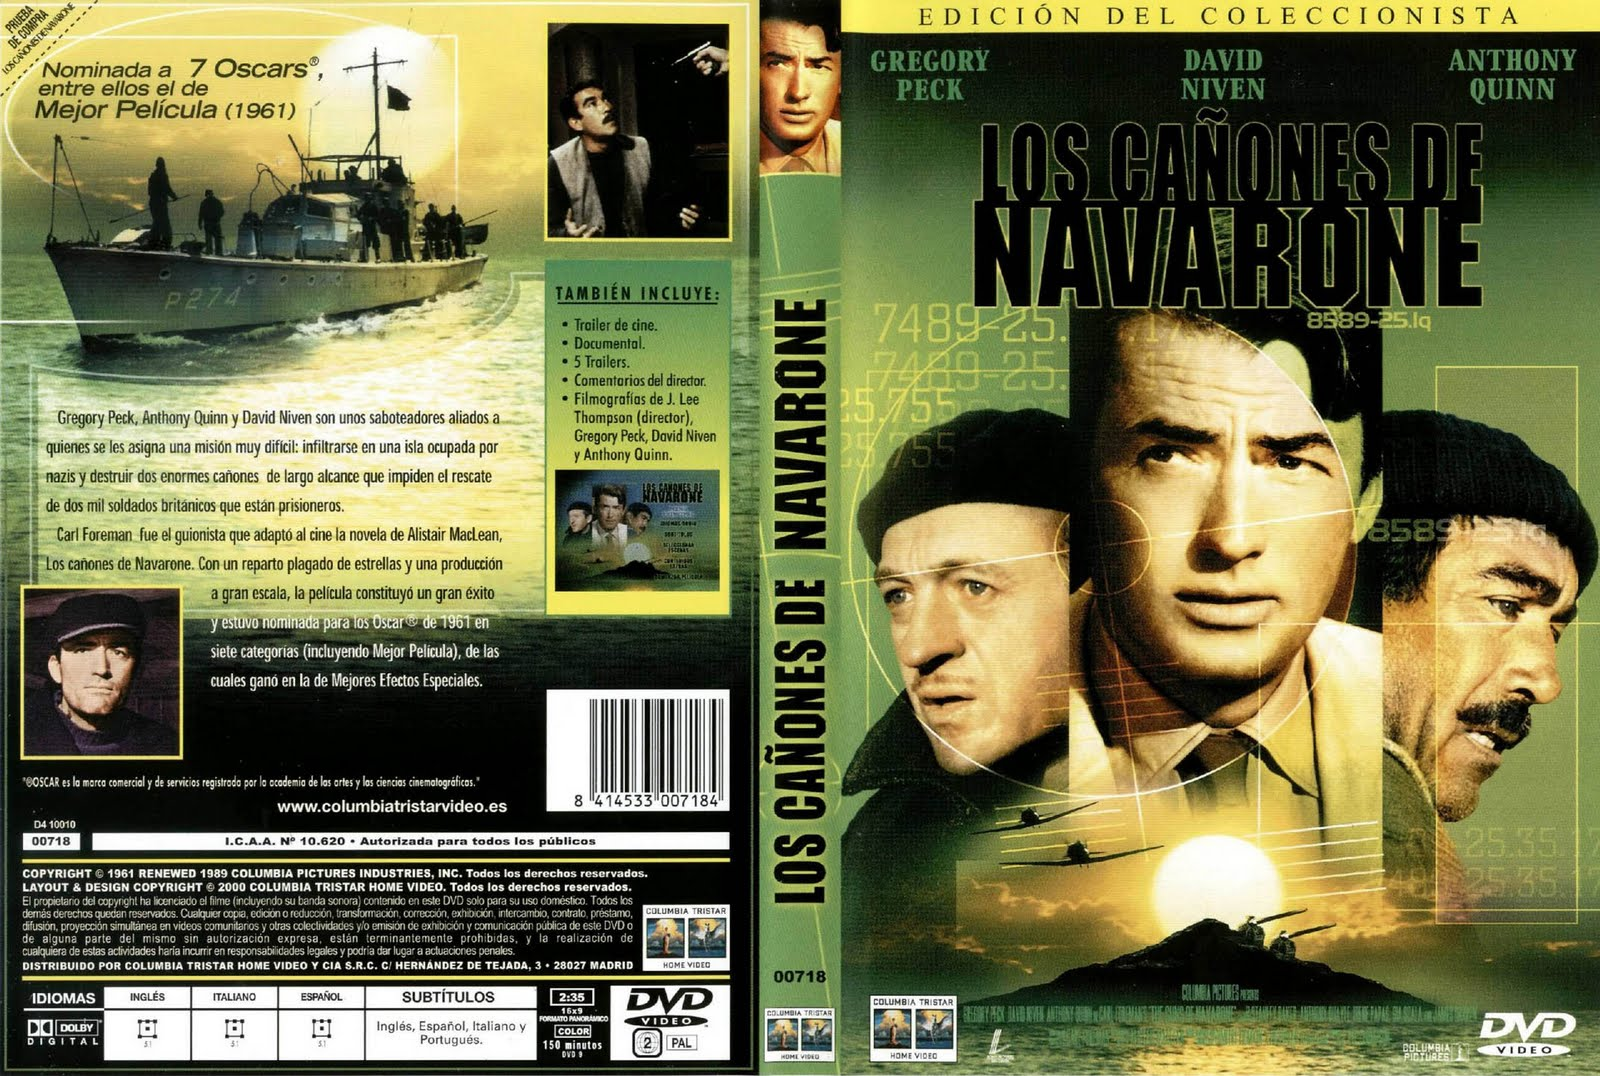 Los cañones de Navarone (1961 - The Guns of Navarone)